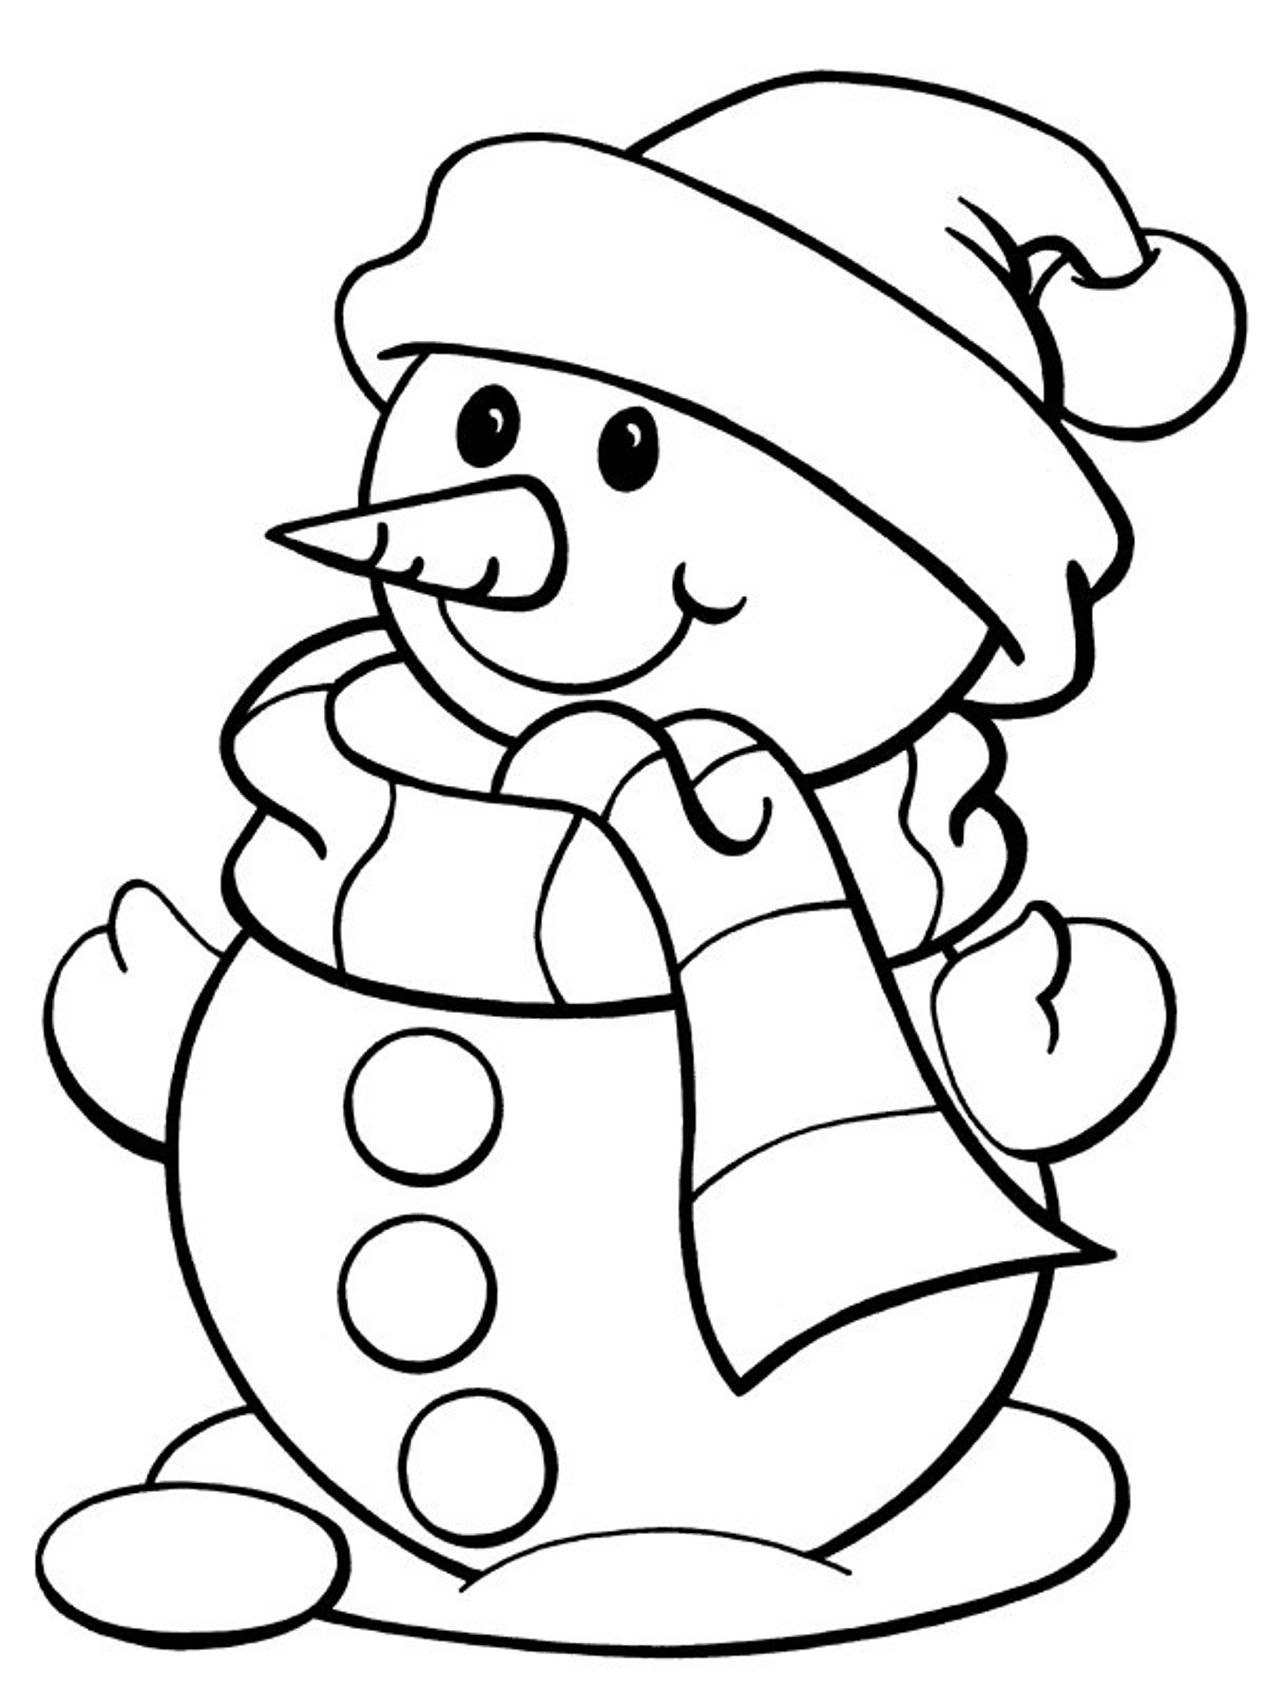 Winter Coloring Pages - Google Search | Winter Party | Christmas - Free Printable Winter Coloring Pages